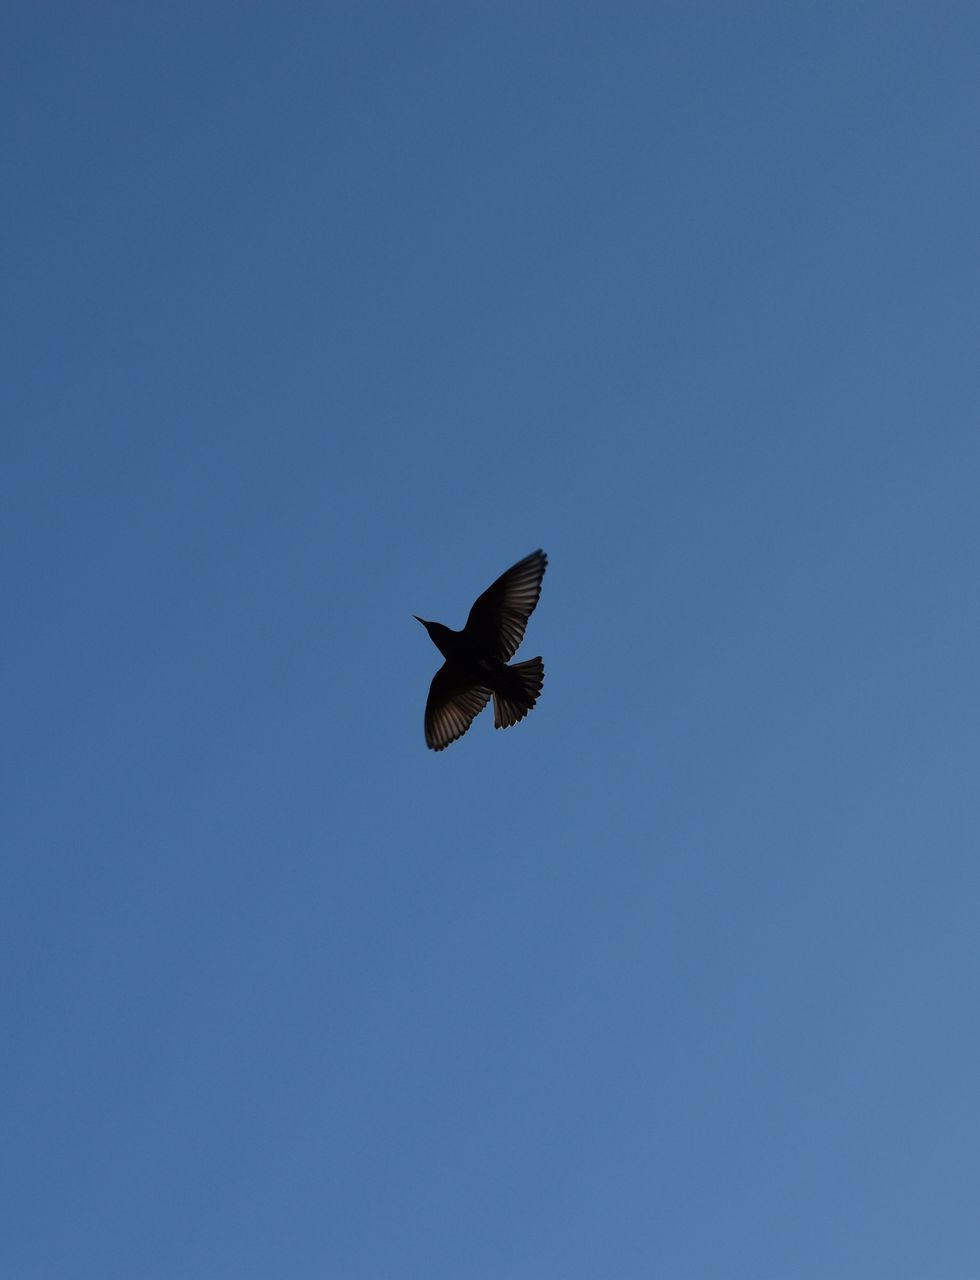 animal wildlife, animal themes, one animal, vertebrate, animals in the wild, animal, bird, flying, sky, low angle view, spread wings, clear sky, mid-air, copy space, blue, no people, motion, day, beauty in nature, nature, outdoors